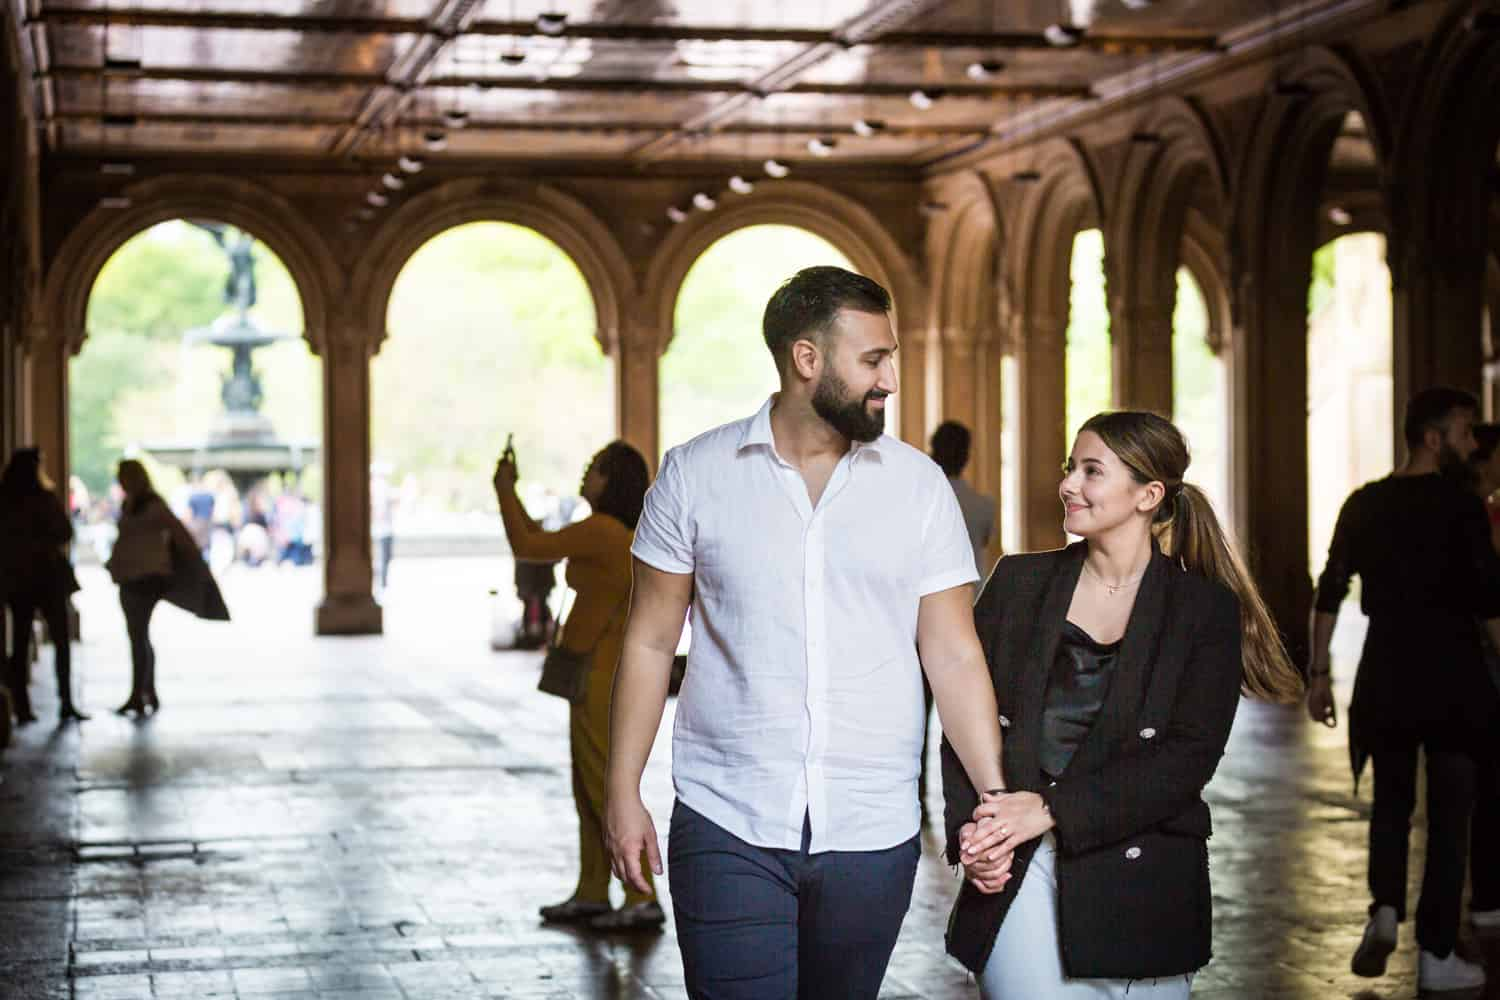 Couple walking hand-in-hand through Bethesda Terrace in Central Park